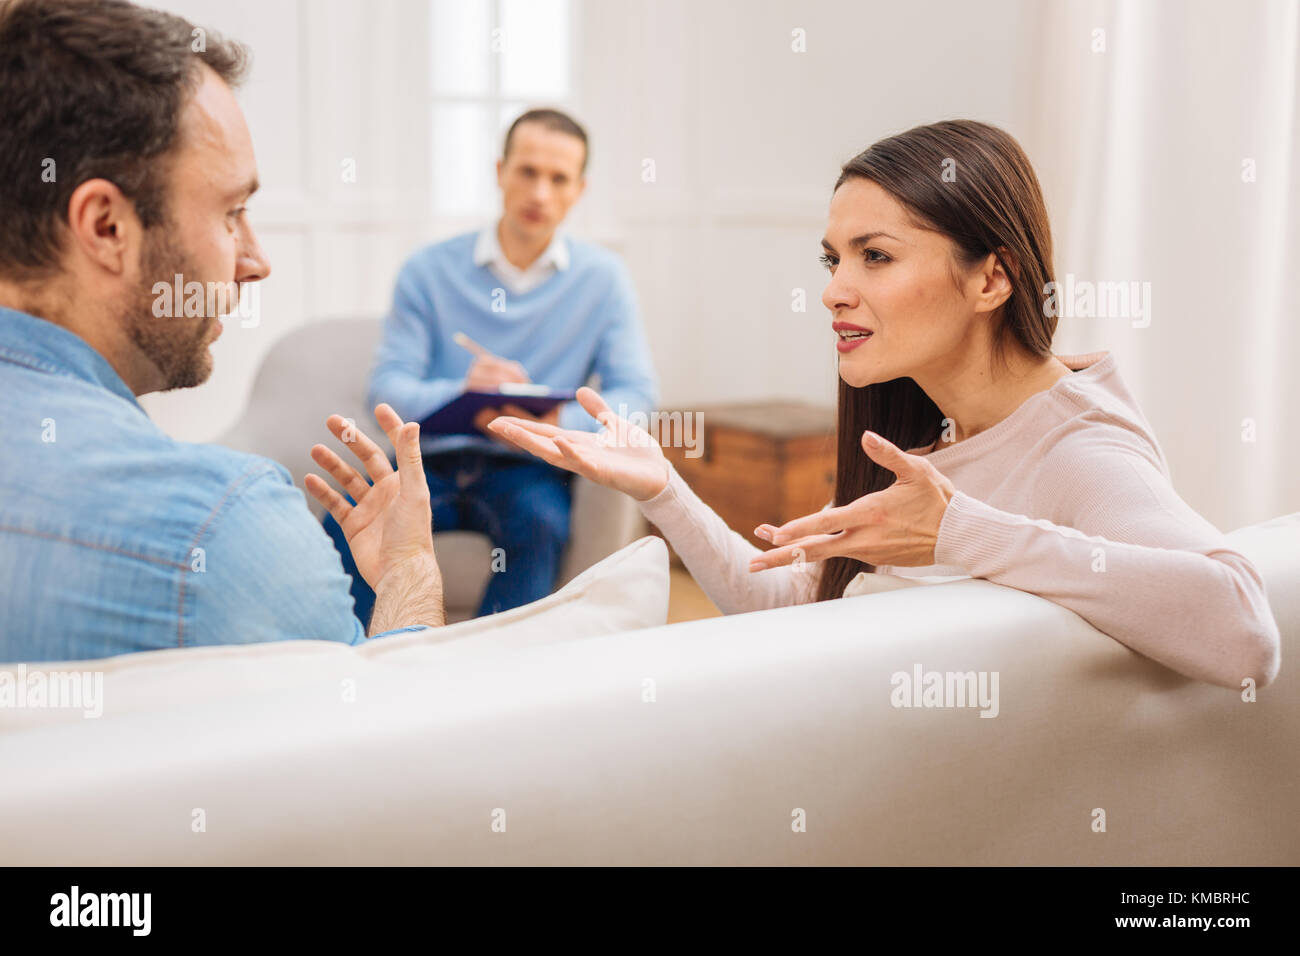 Angry elegant wife shows dissatisfaction to husband during therapy - Stock Image